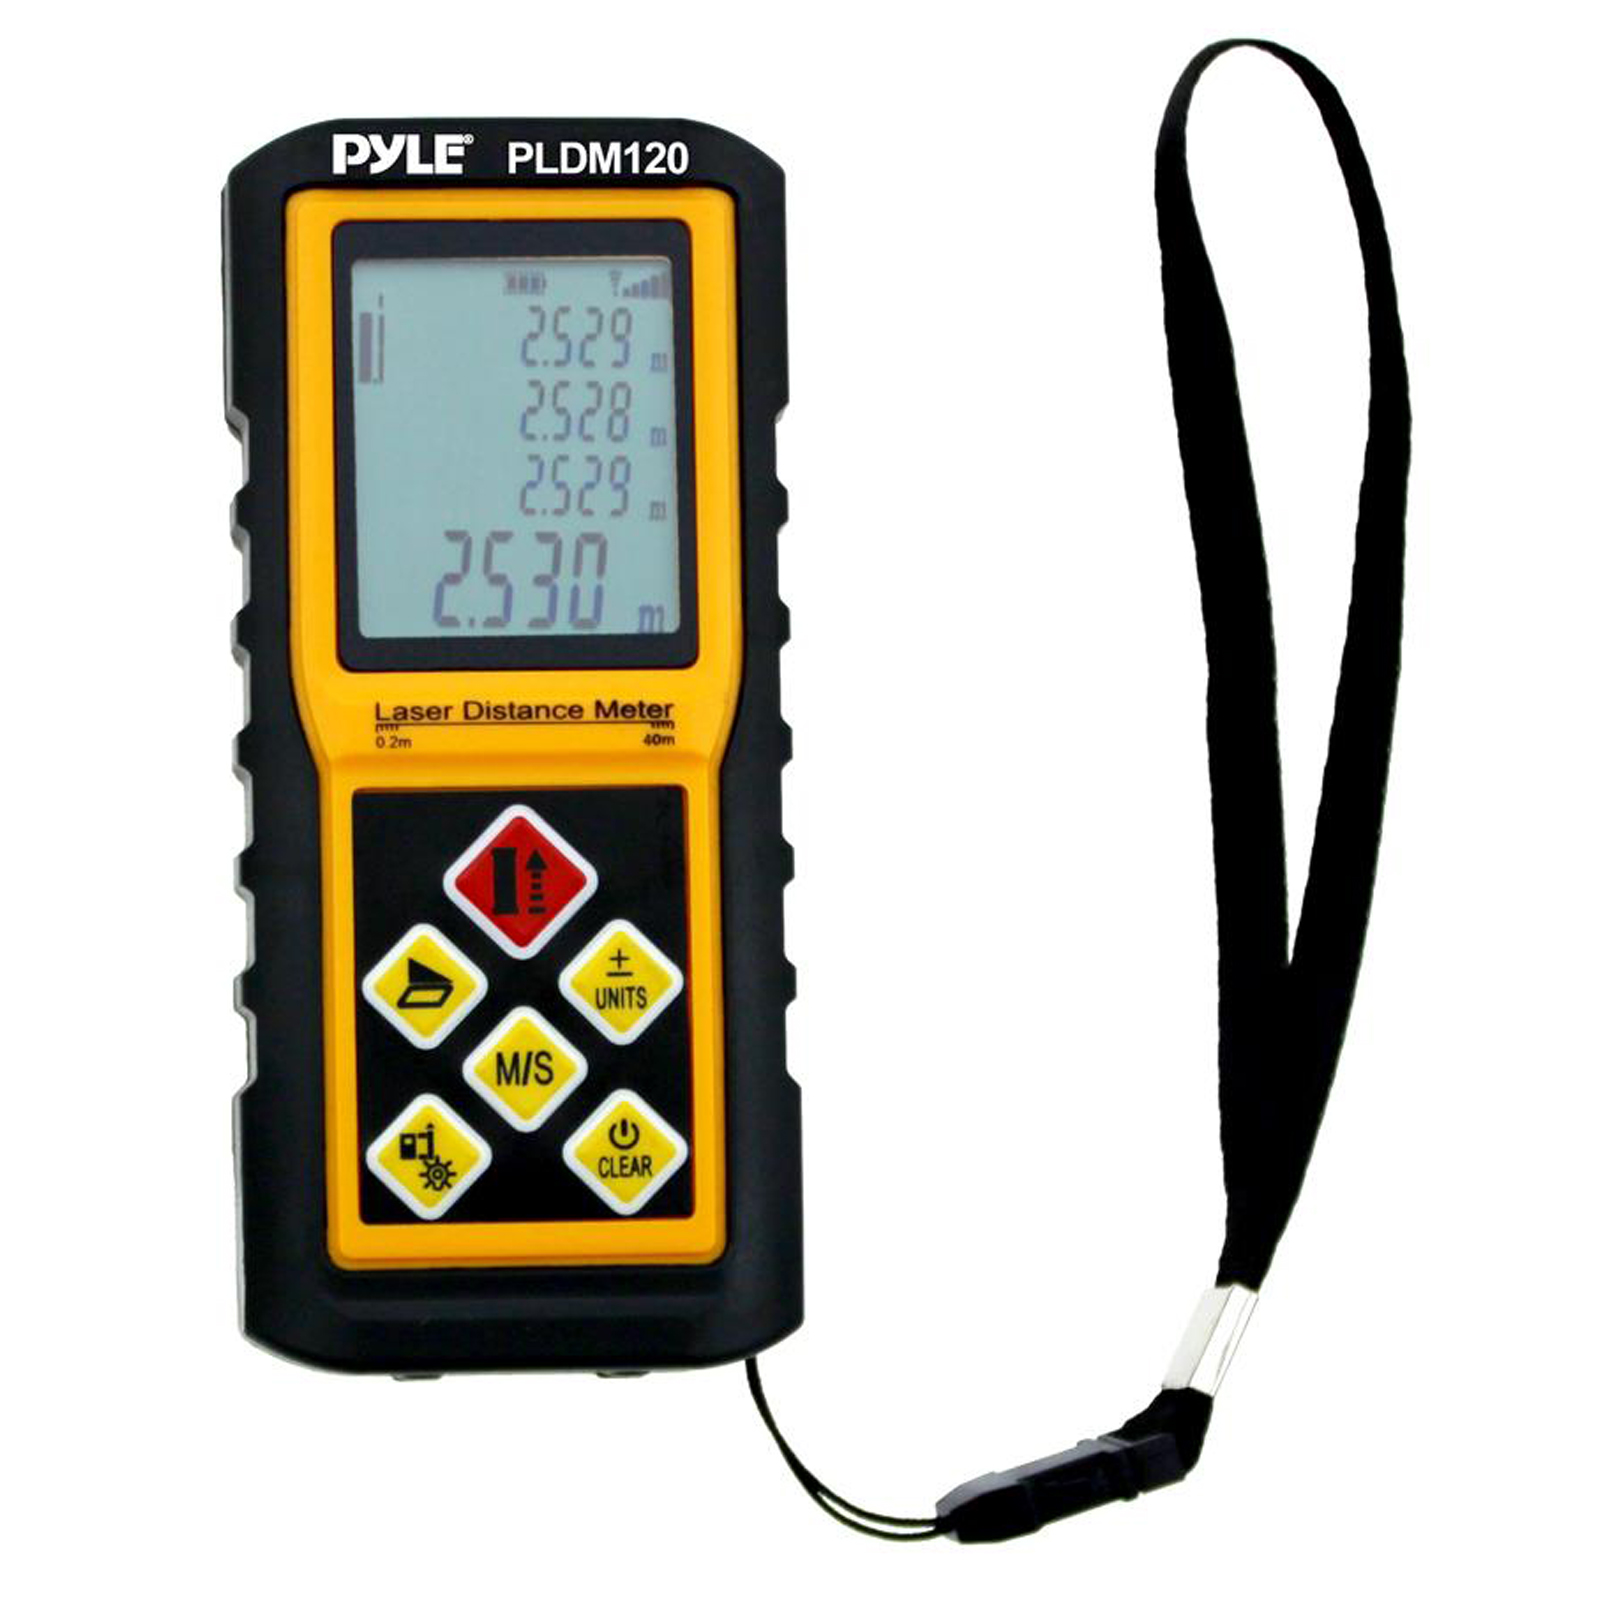 Pyle 300 Ft. Handheld Laser Distance Meter with Calculation, Tool Backlit LCD Display,... by Pyle